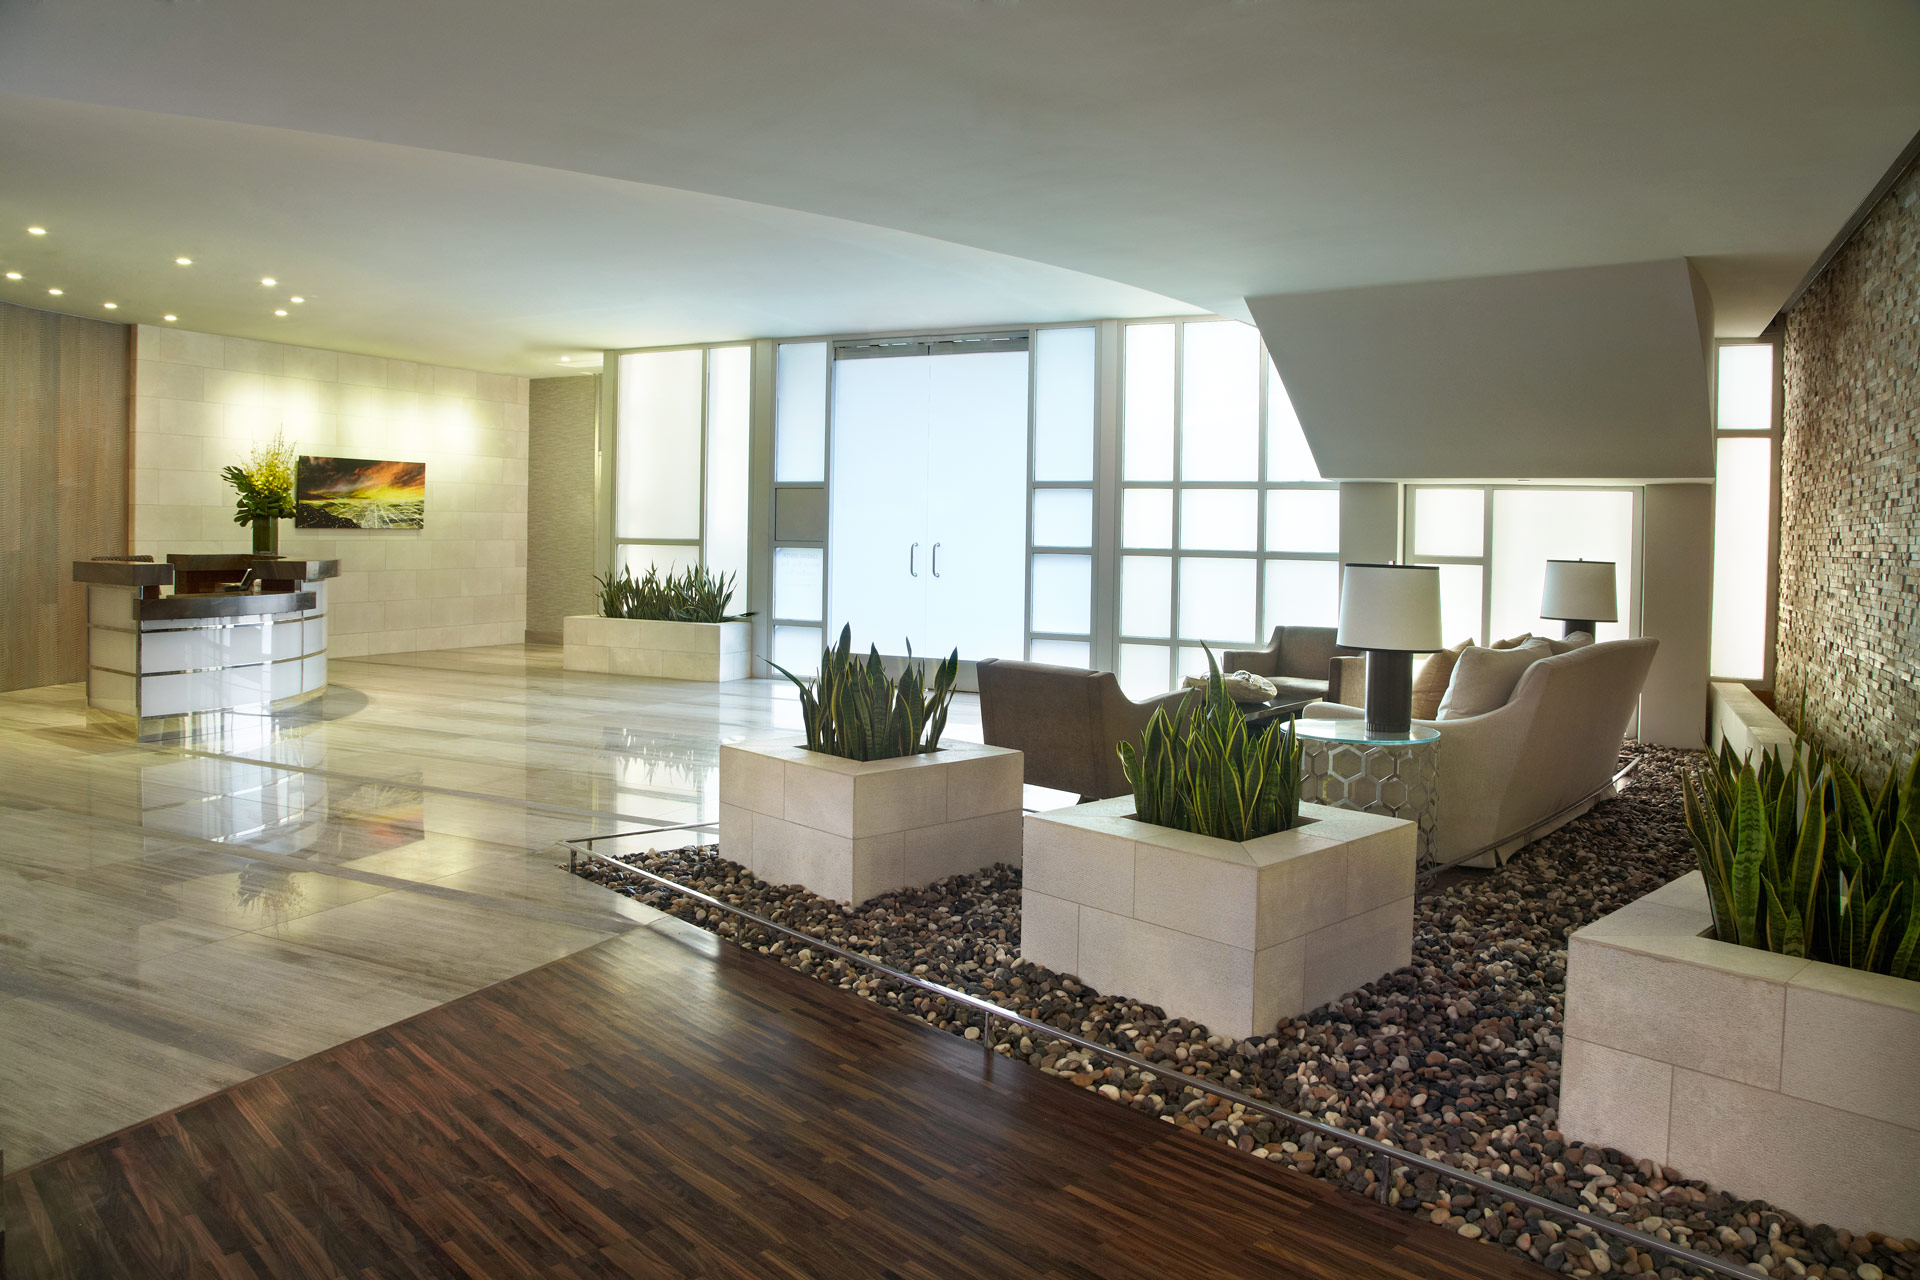 The Avenue lobby and concierge